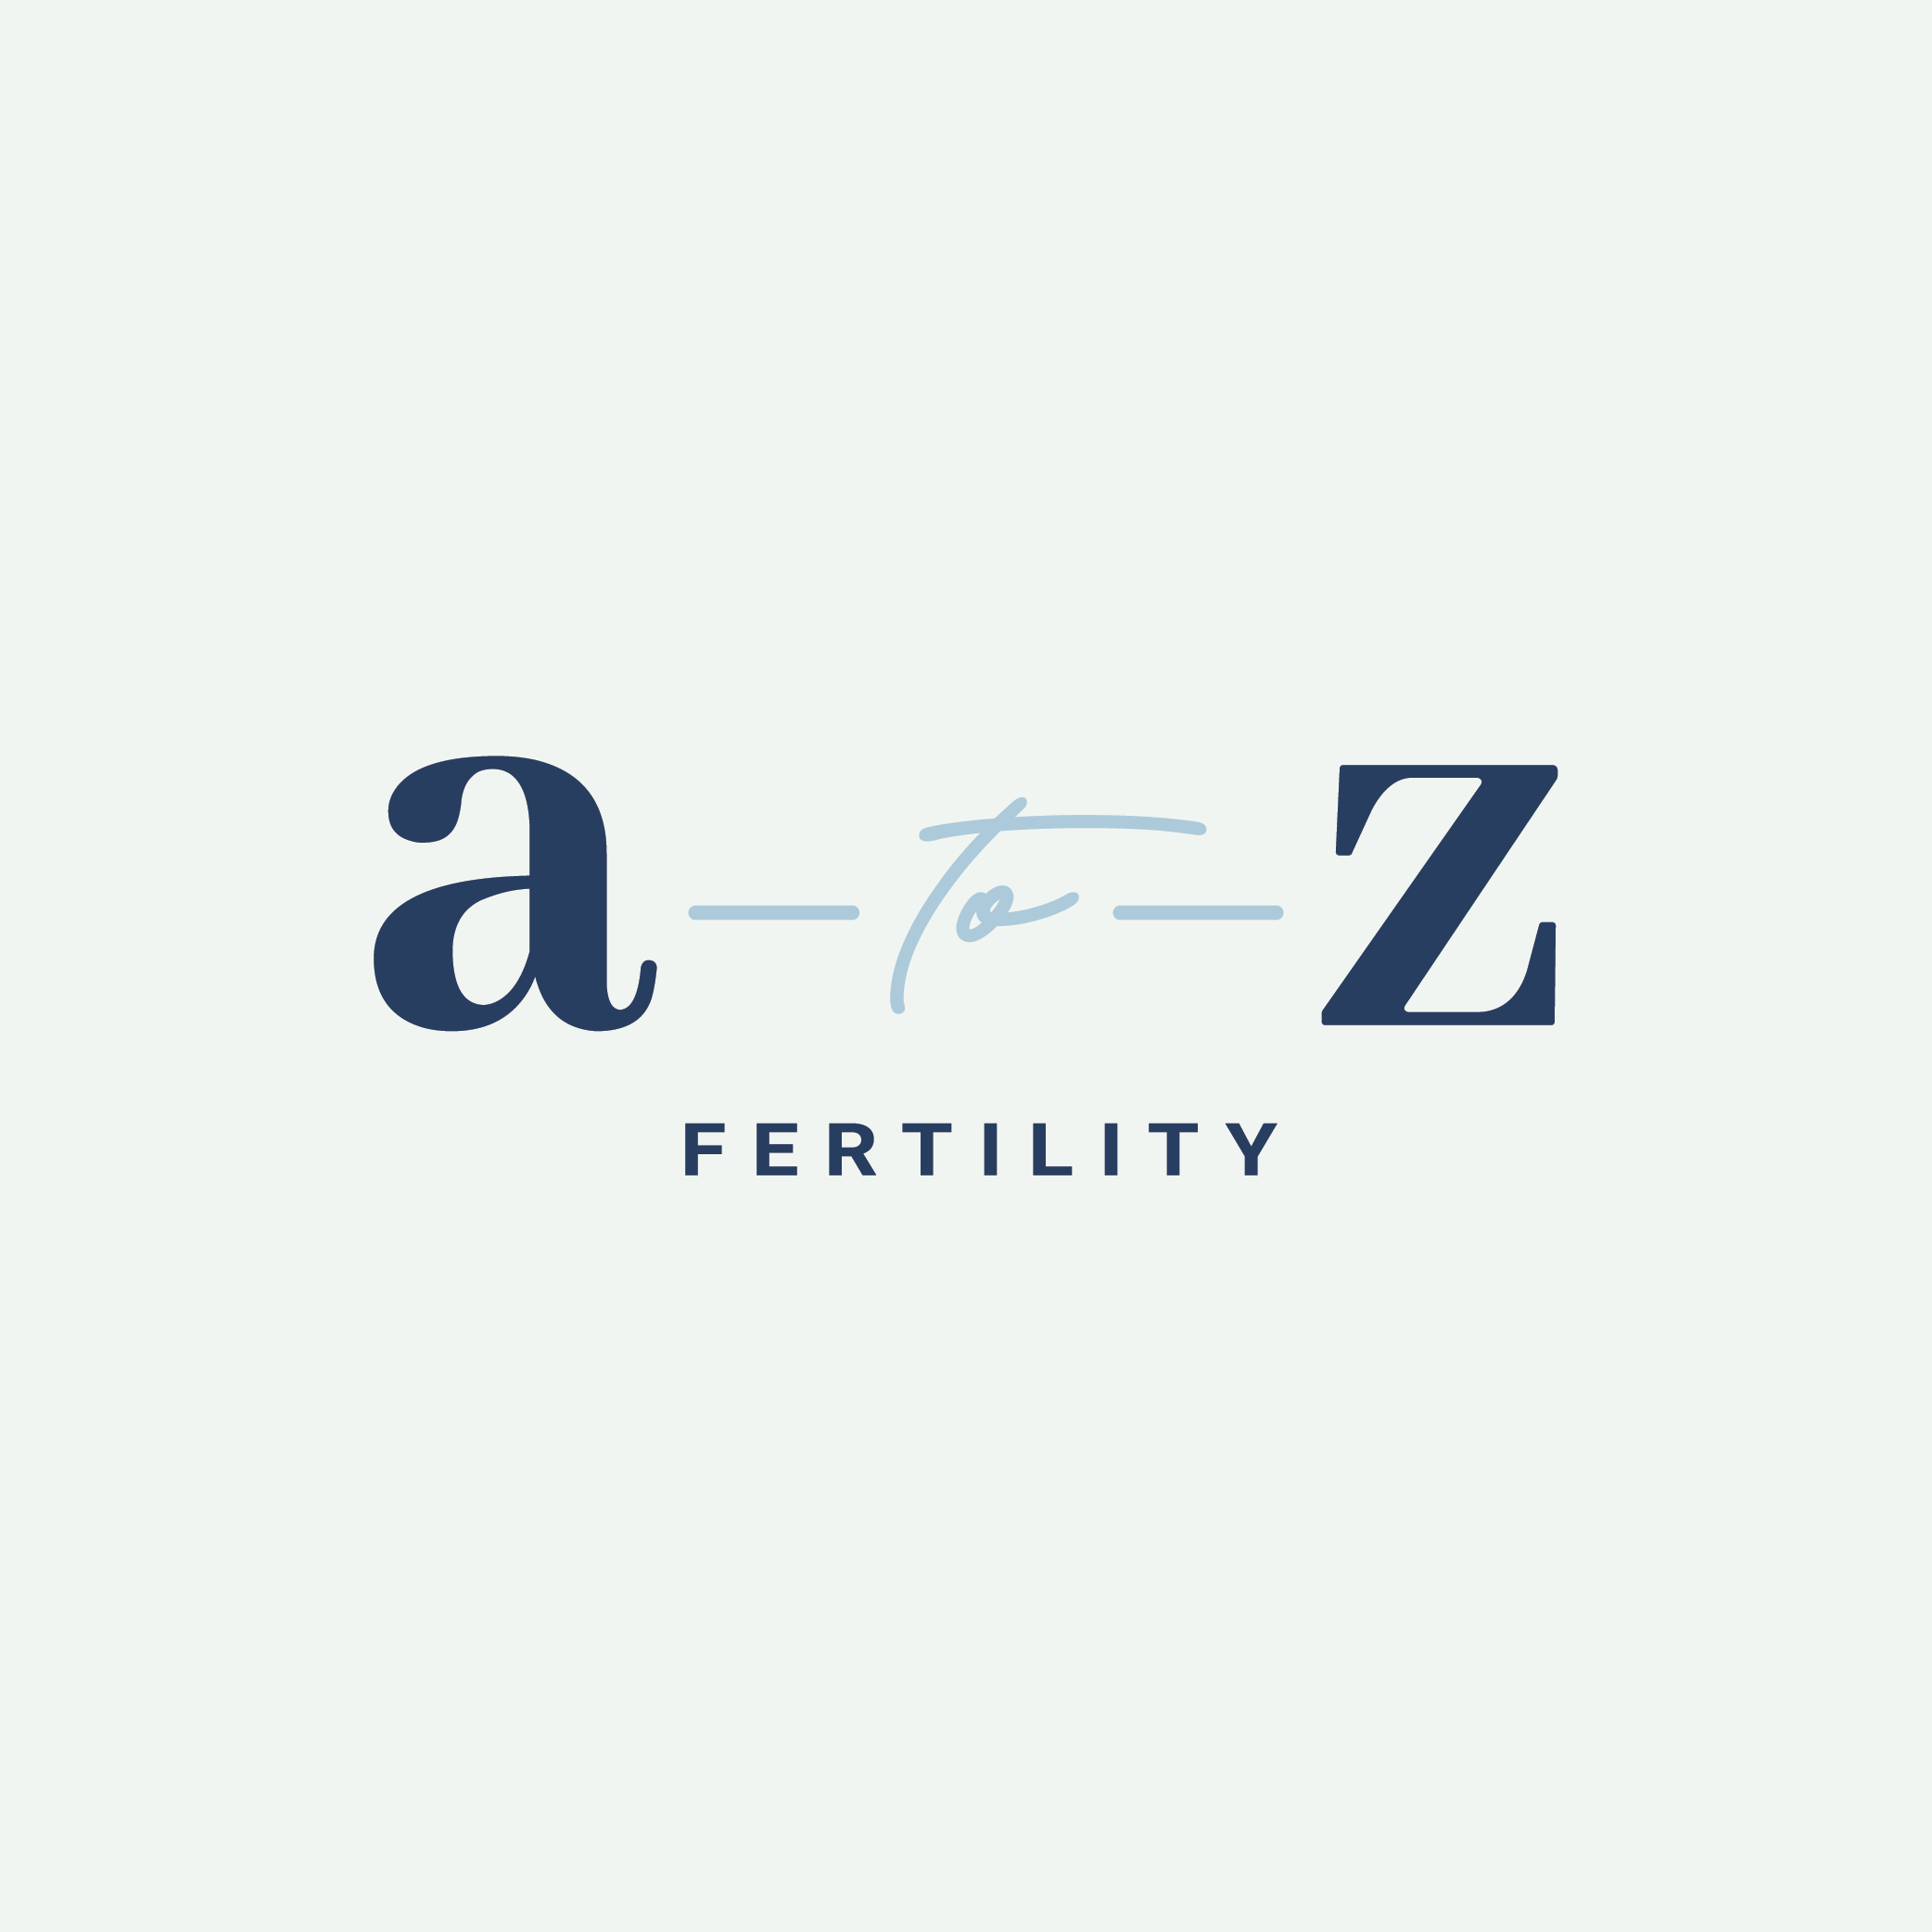 a-to-z-fertility-shareable-graphics-01.png